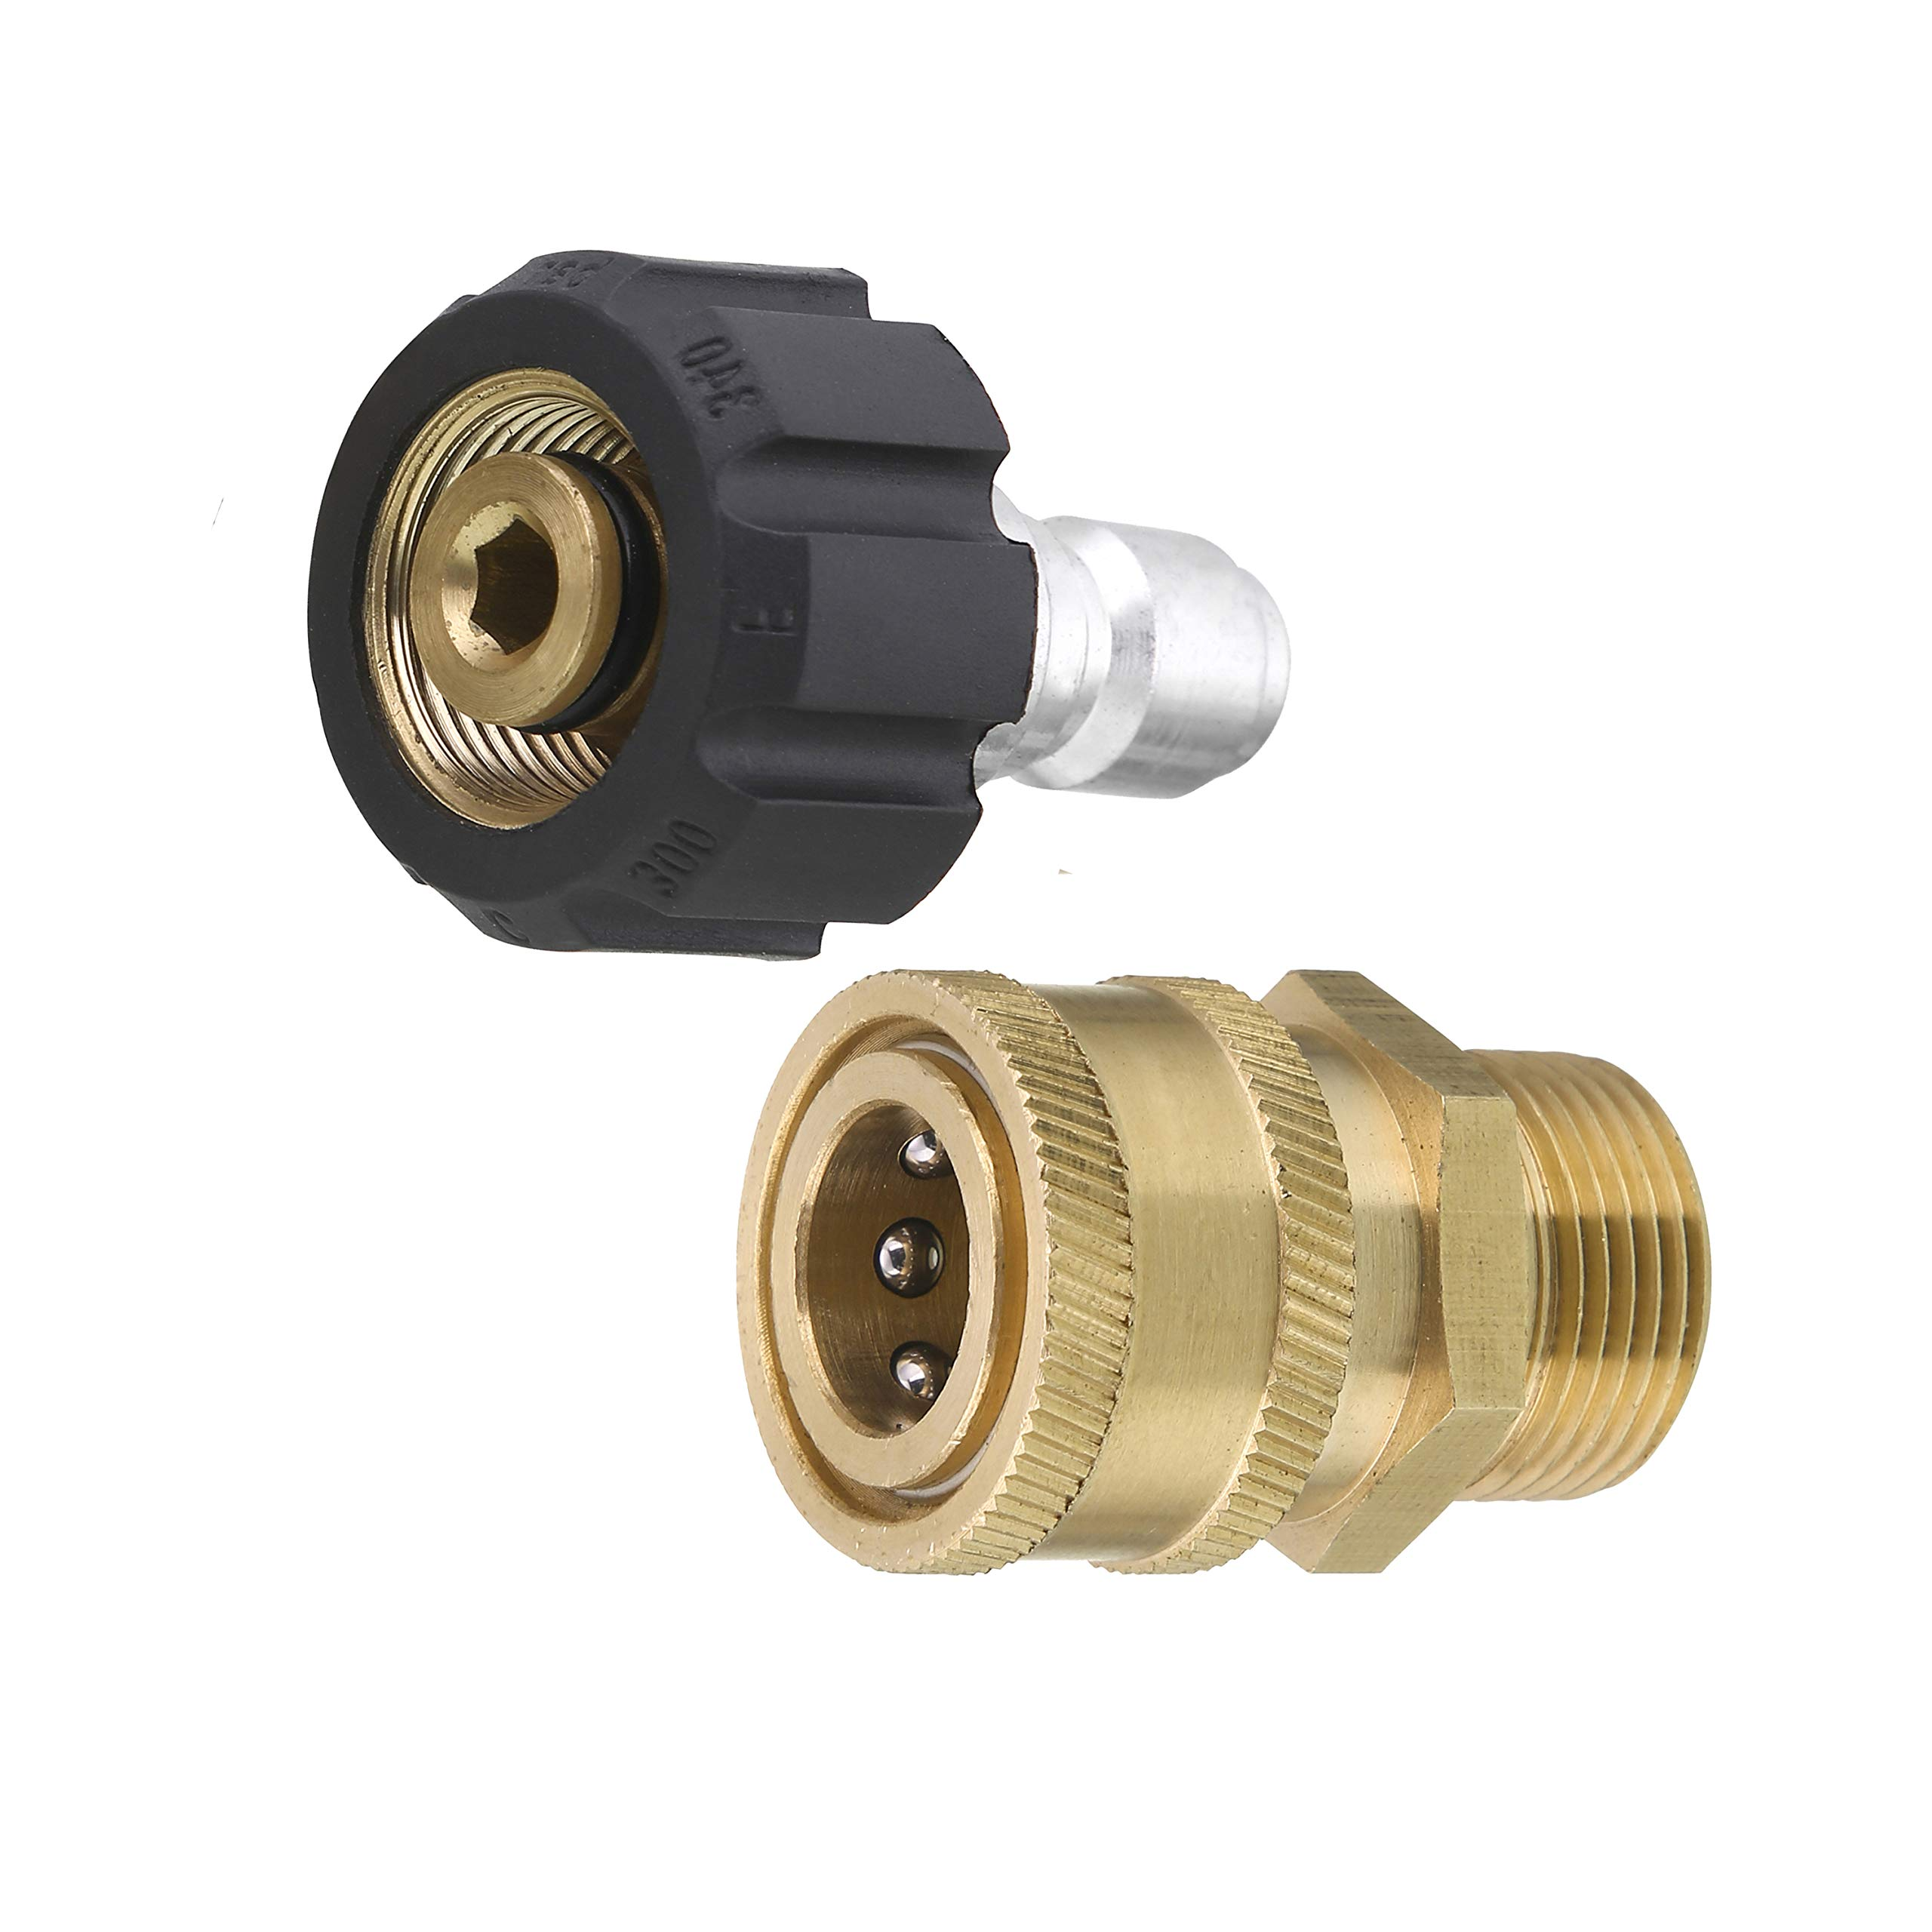 Tool Daily Pressure Washer Adapter Set, Quick Connect Kit, Metric M22 15mm Female Swivel to M22 Male Fitting, 5000 PSI